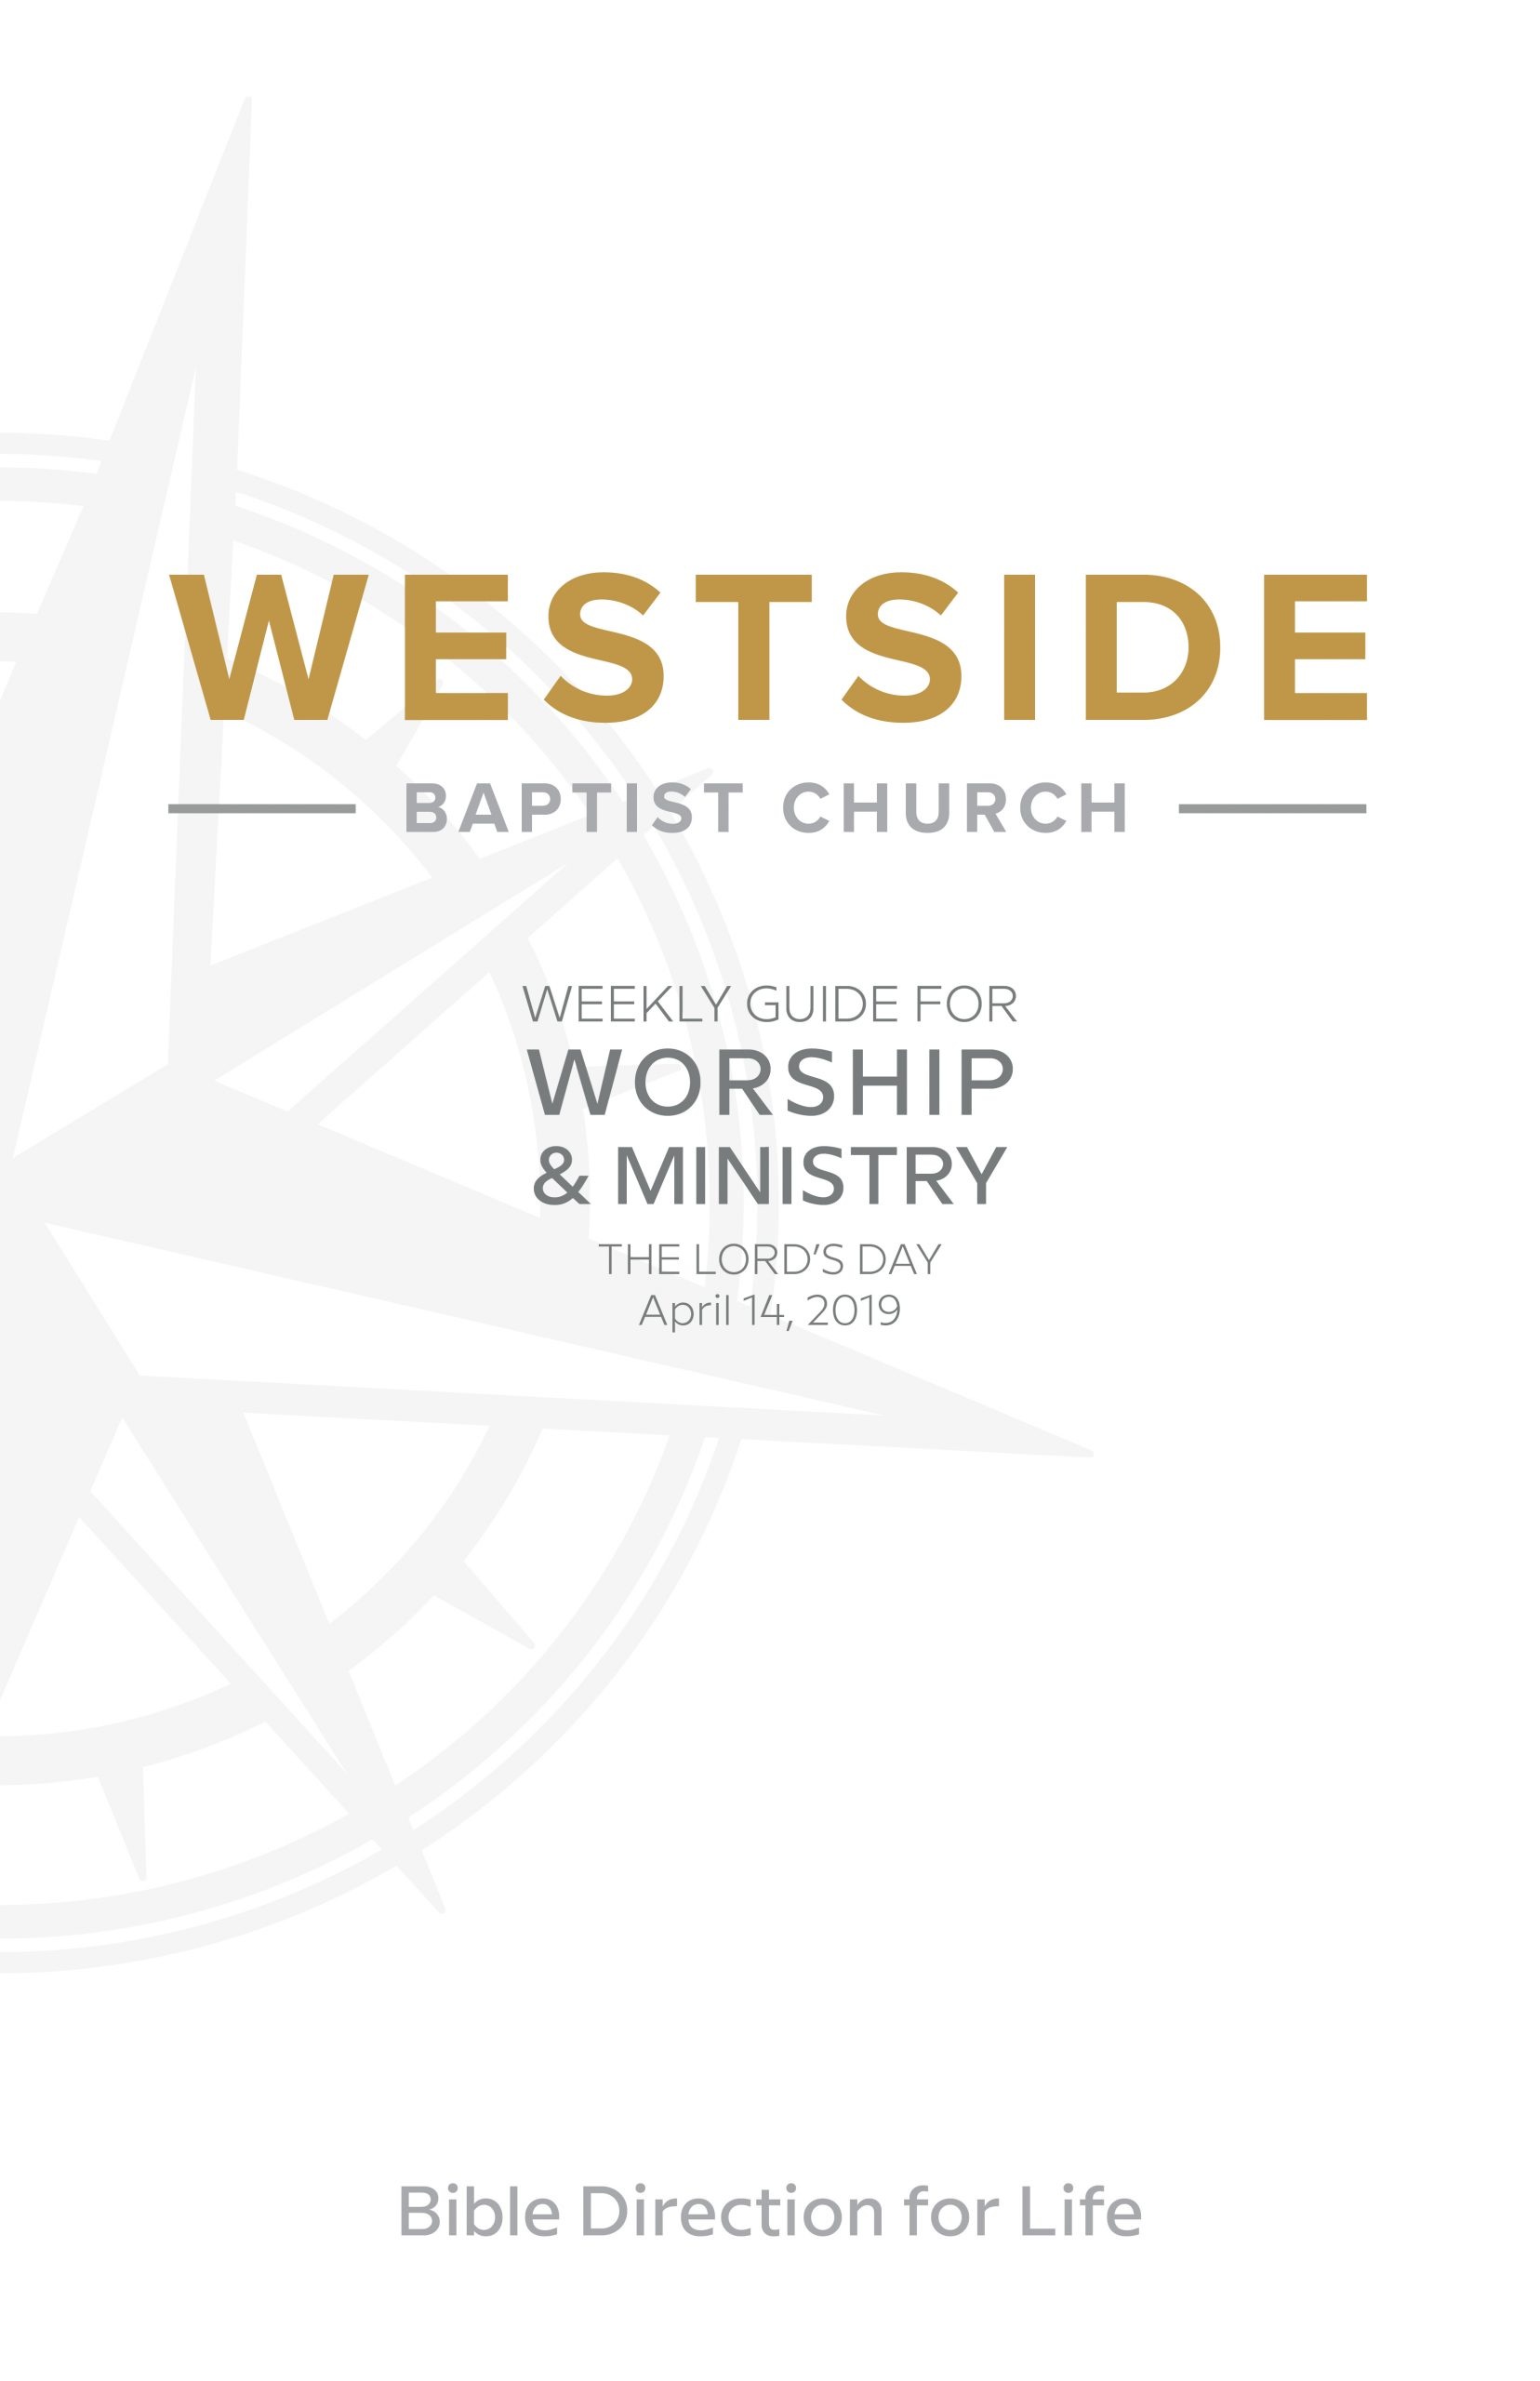 Weekly Guide for Worship and Ministry—April 14